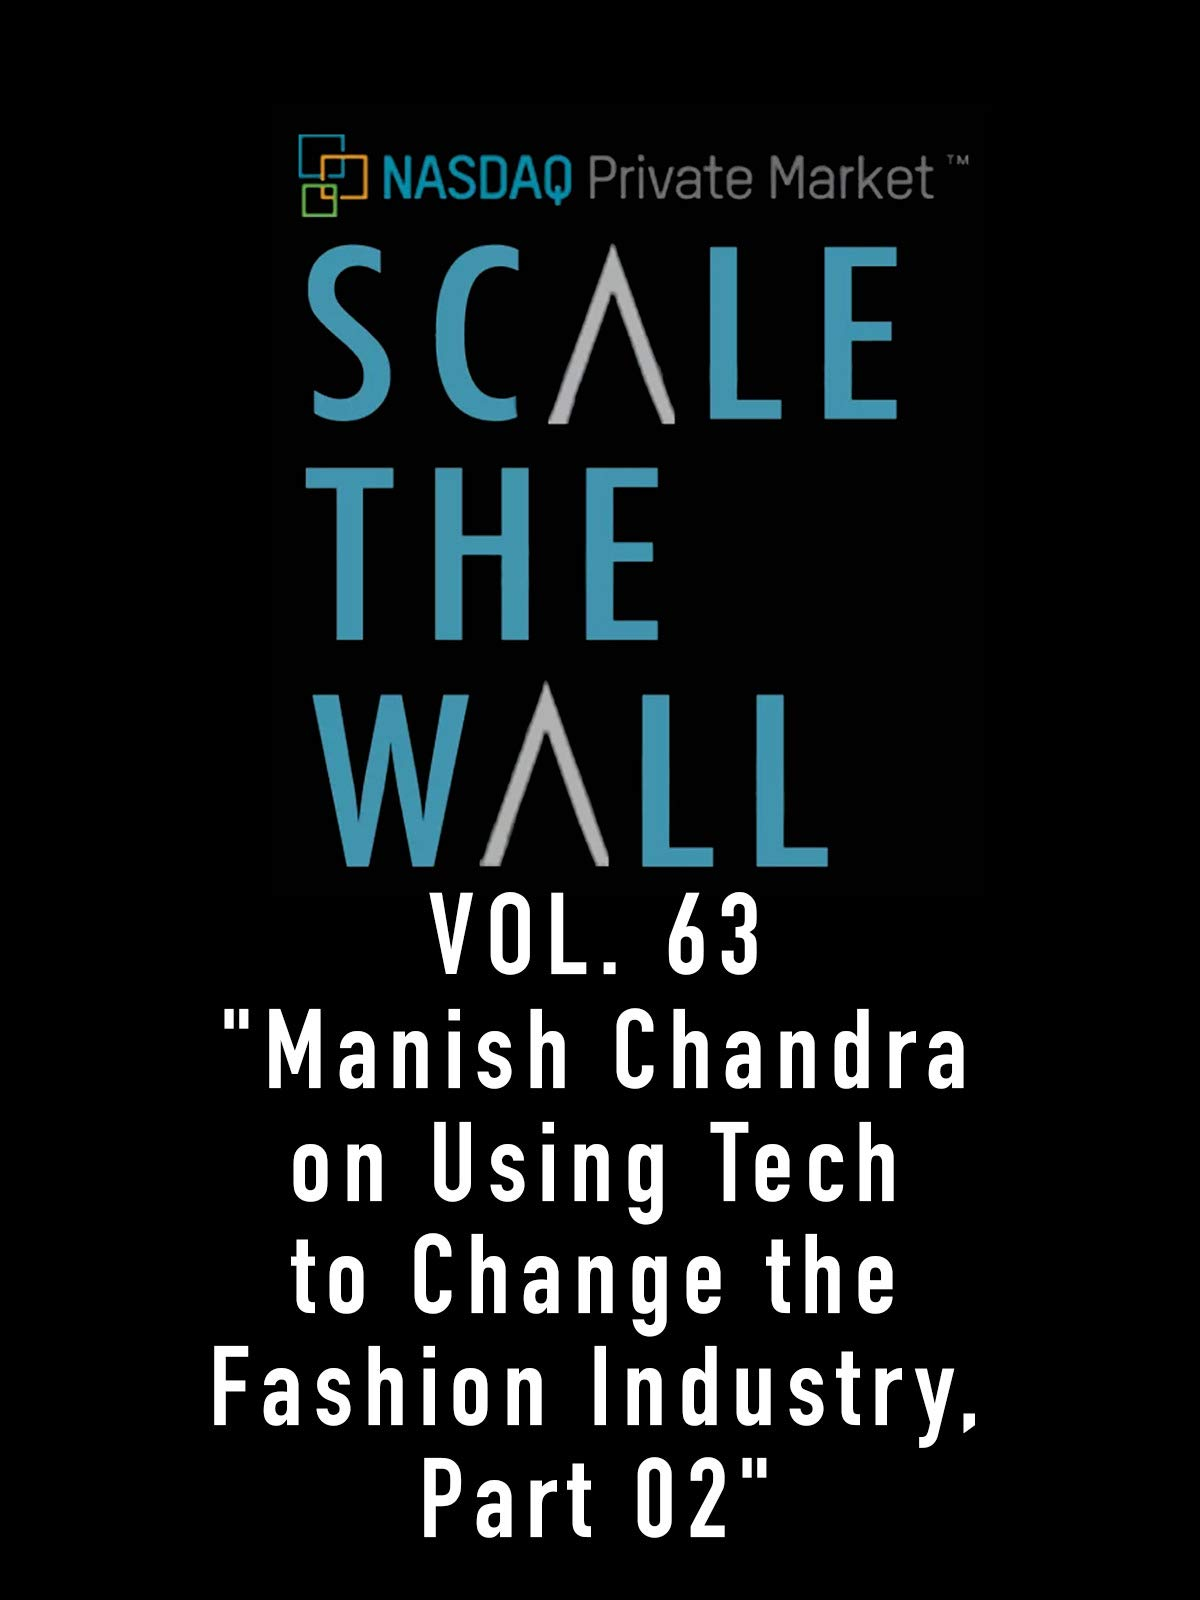 Scale The Wall Vol. 63